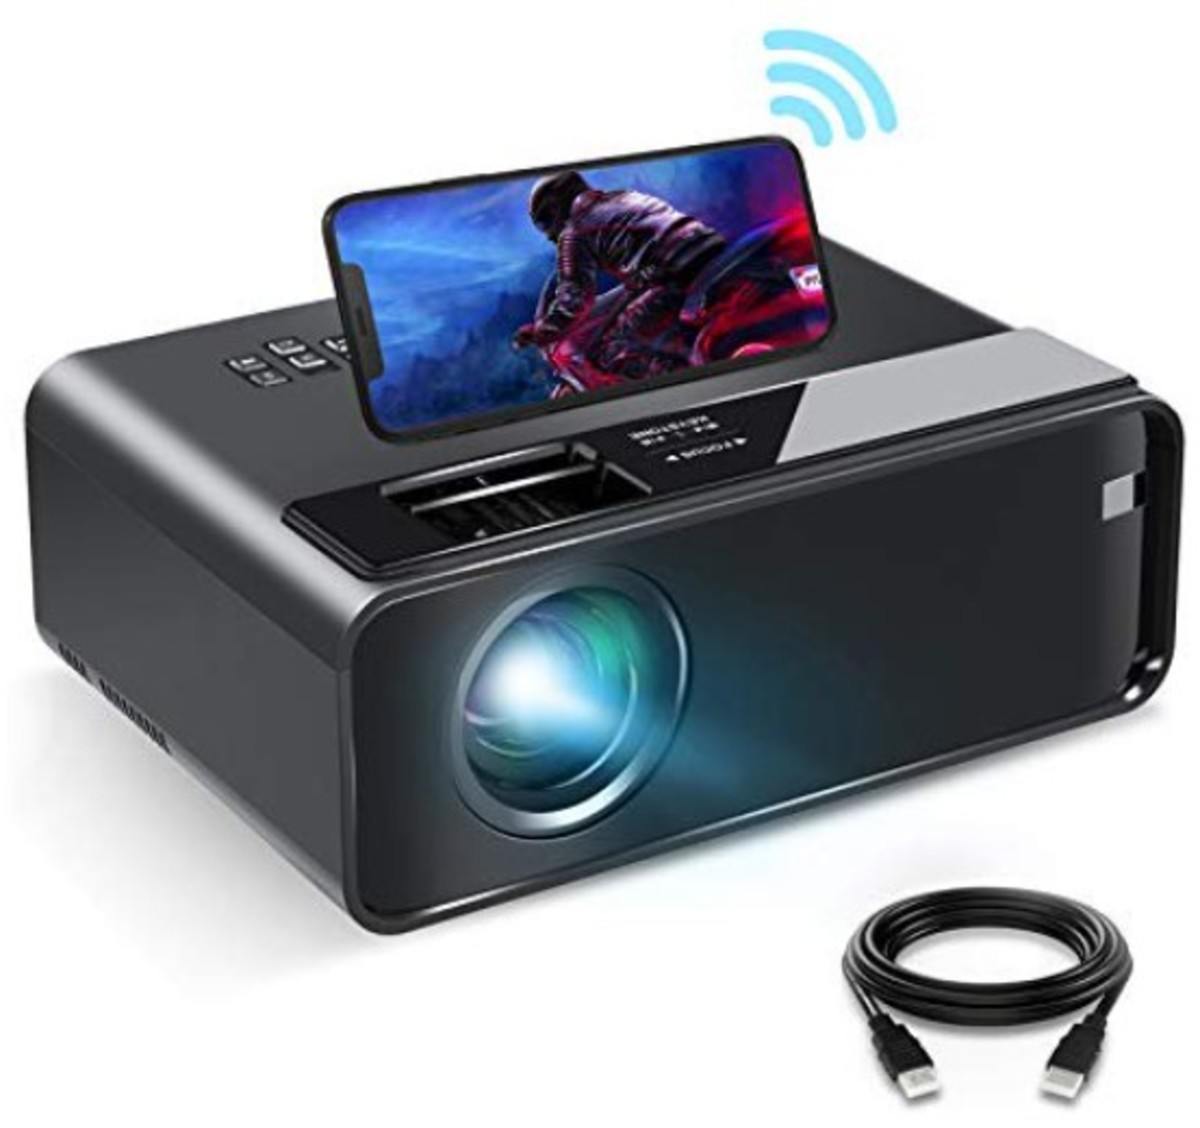 """Mini Projector for iPhone and Android phones, ELEPHAS 2021 Upgrade WiFi Movie Projector with Synchronize Smartphone Screen, 1080P HD Portable Projector Supported 200"""" Screen, Compatible with Android/iOS/HDMI/USB/SD/VGA"""